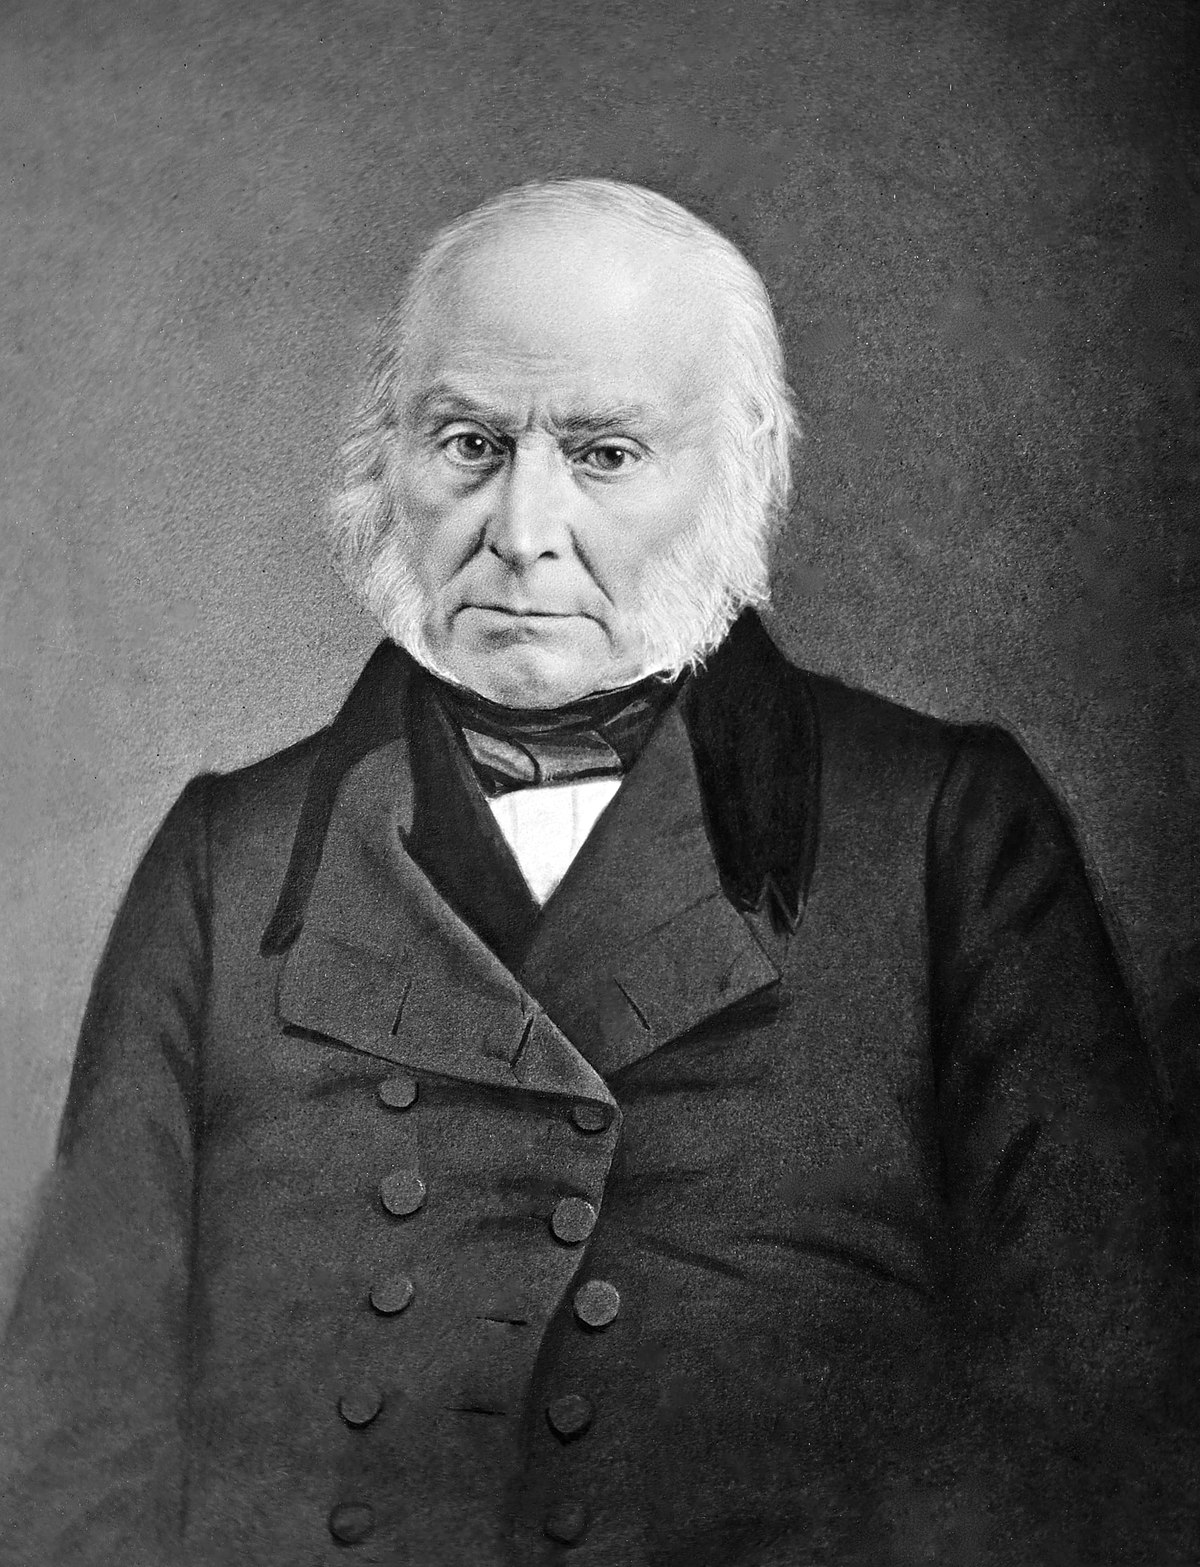 james monroe and john quincy adams Much of monroe's administration believed that jackson had gone too far, but secretary of state john quincy adams instead took the offensive in the adams-onís treaty.